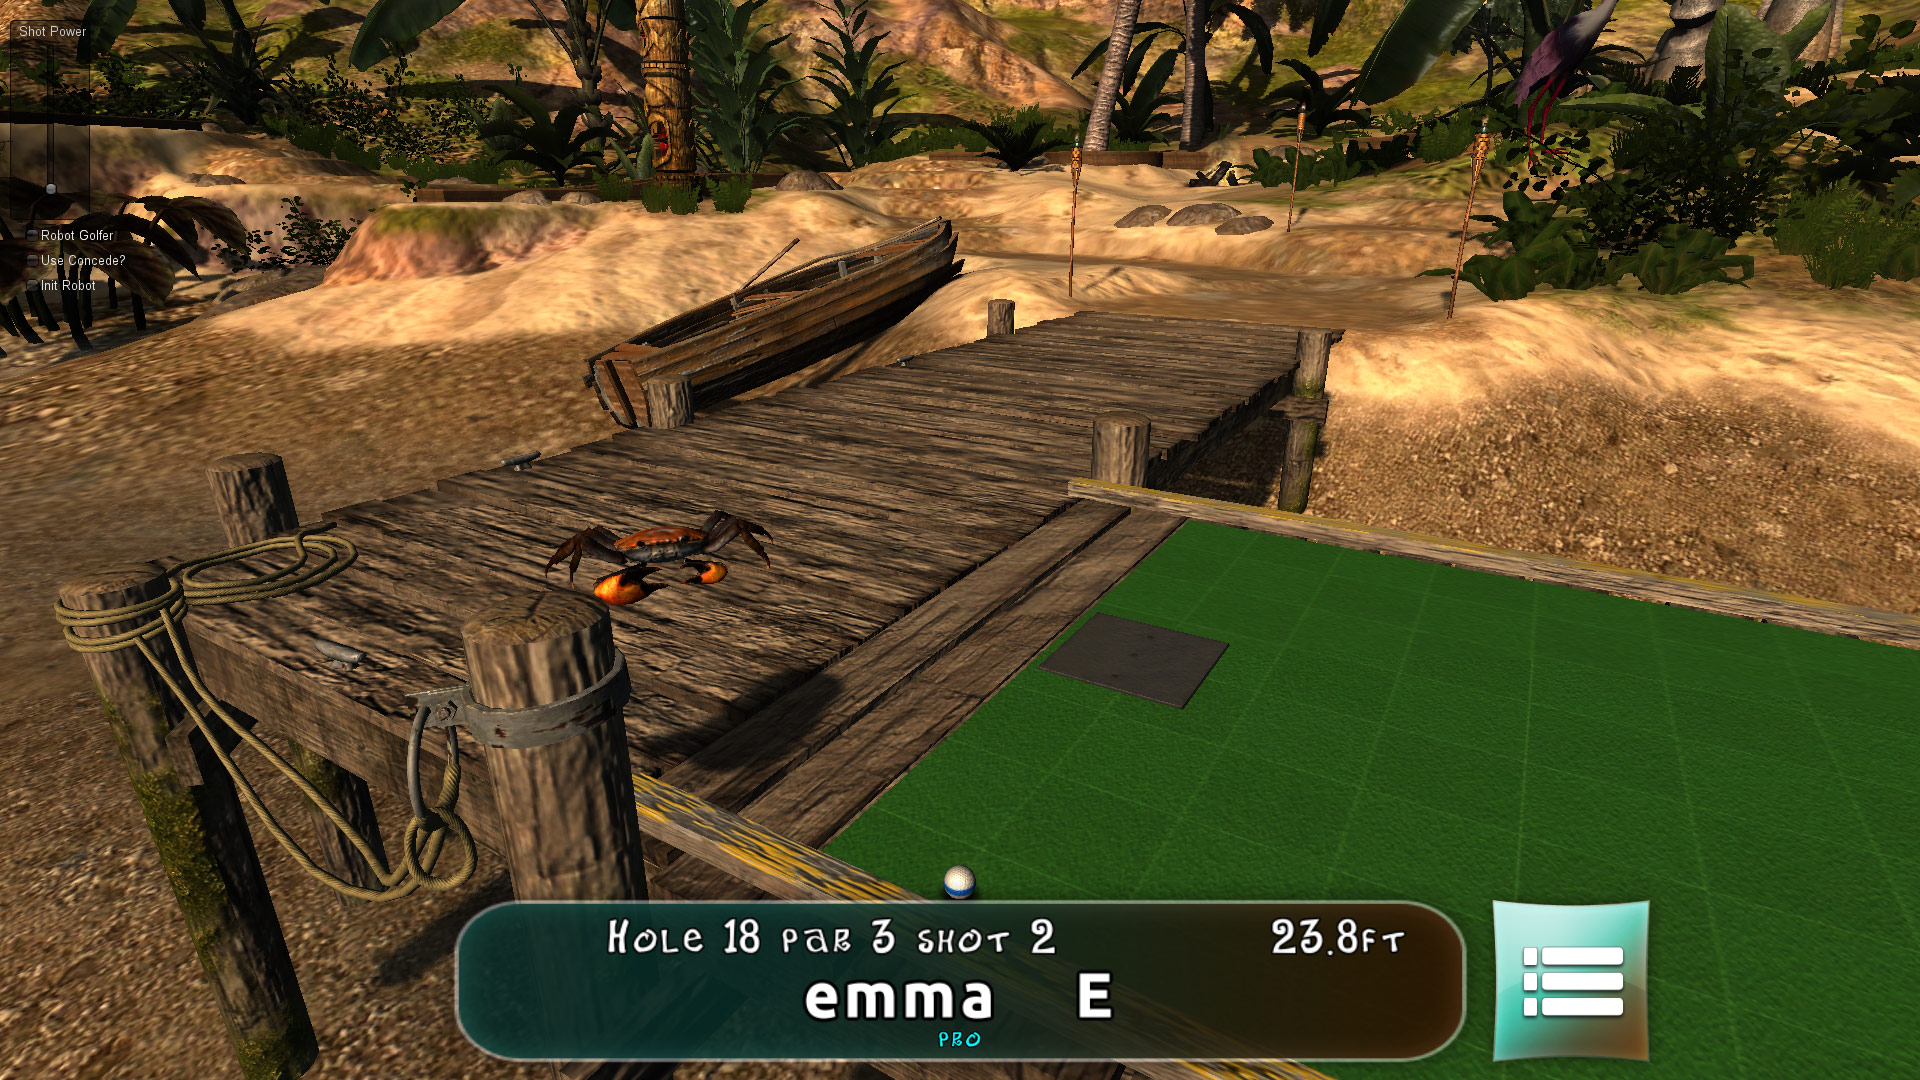 Responsible for Art Direction, contribution to game design, assembled entire level. Modeled and textured all terrain, rocks, dock, tiki hut, lantern; textured all mini-putt holes; lighting, shader setup; GUI design and implementation. Rendered in Unity.